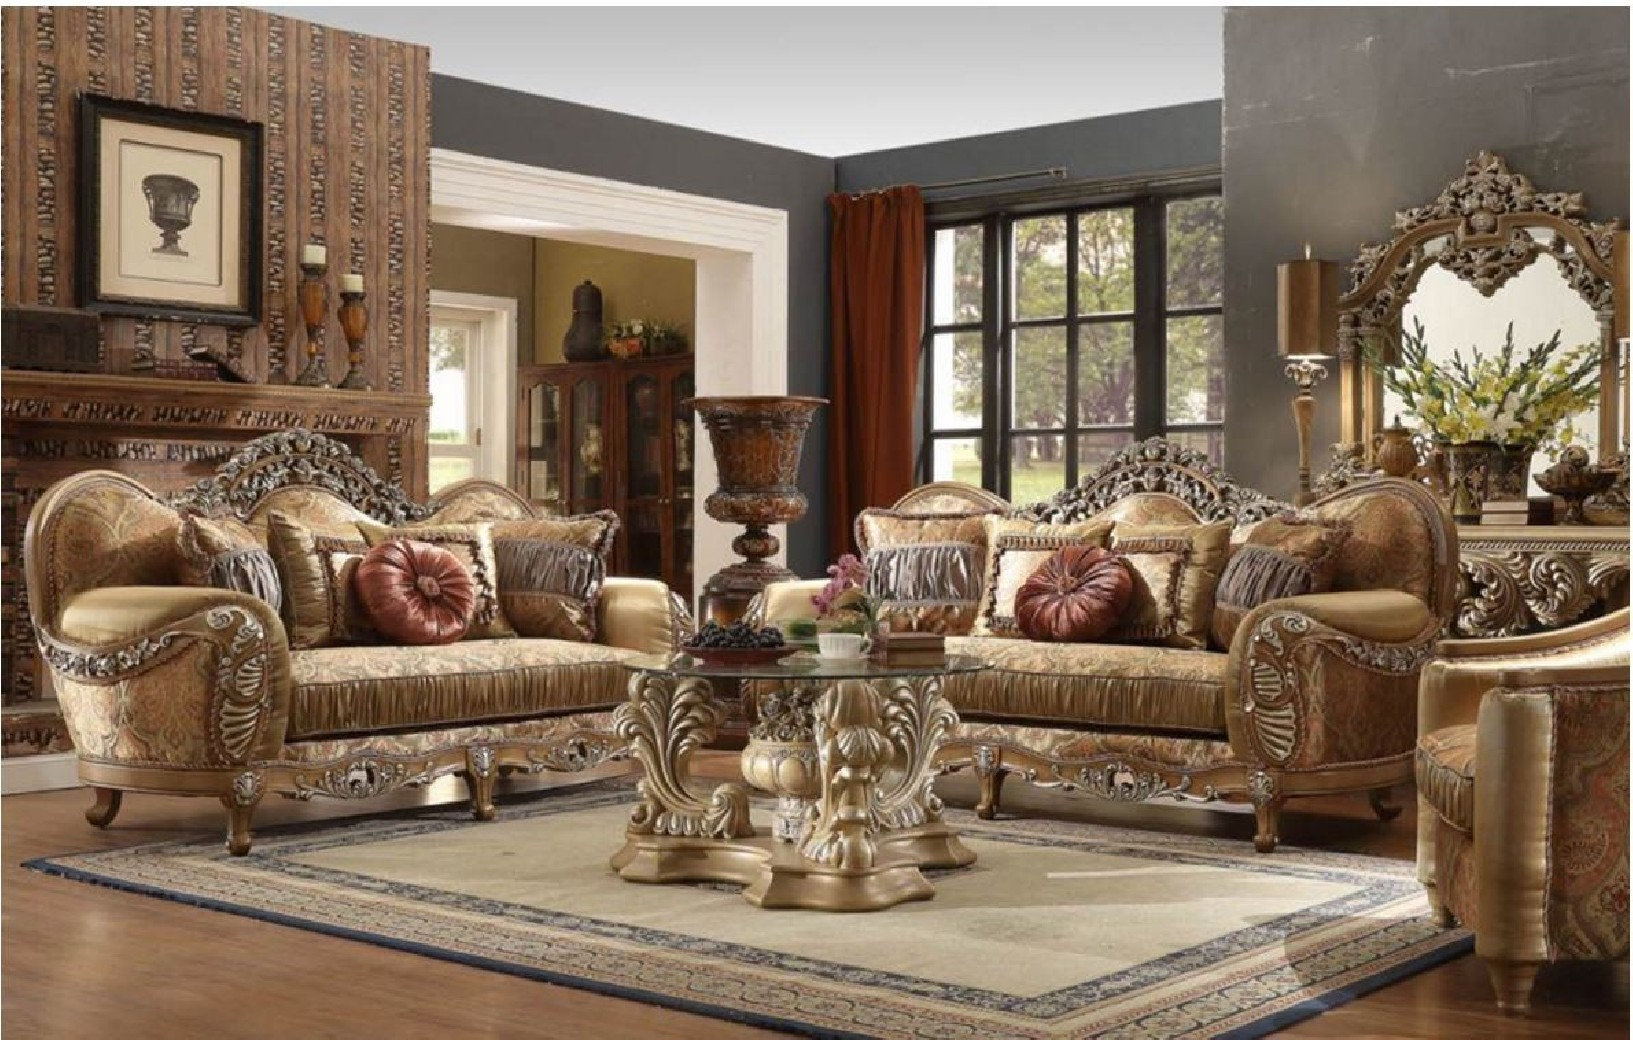 HD 622 Homey Design upholstery living room set Victorian